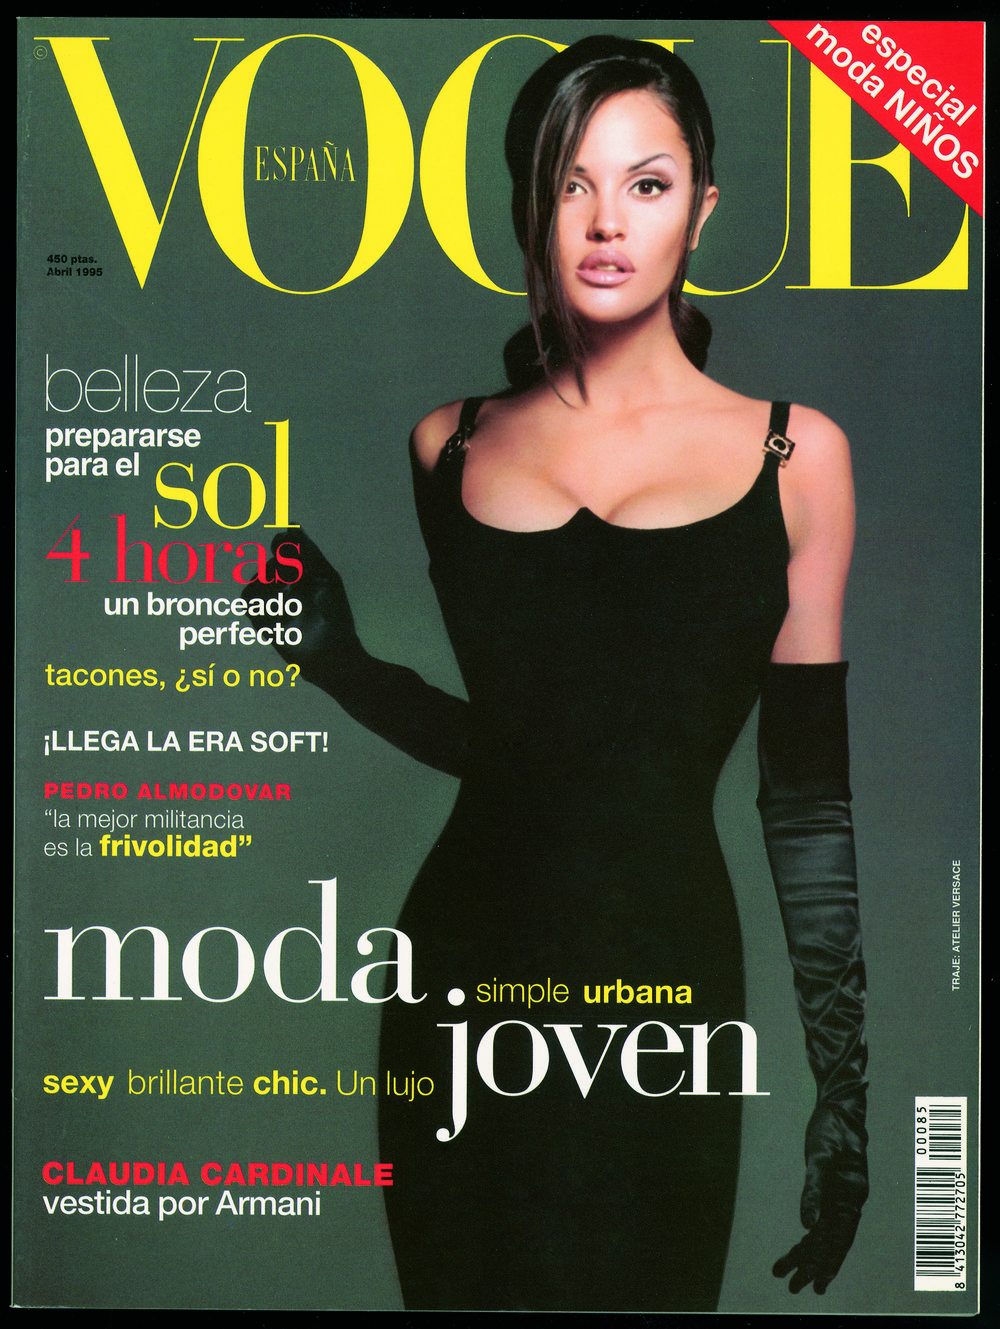 Vogue Spain Cover, Matthew Rolston